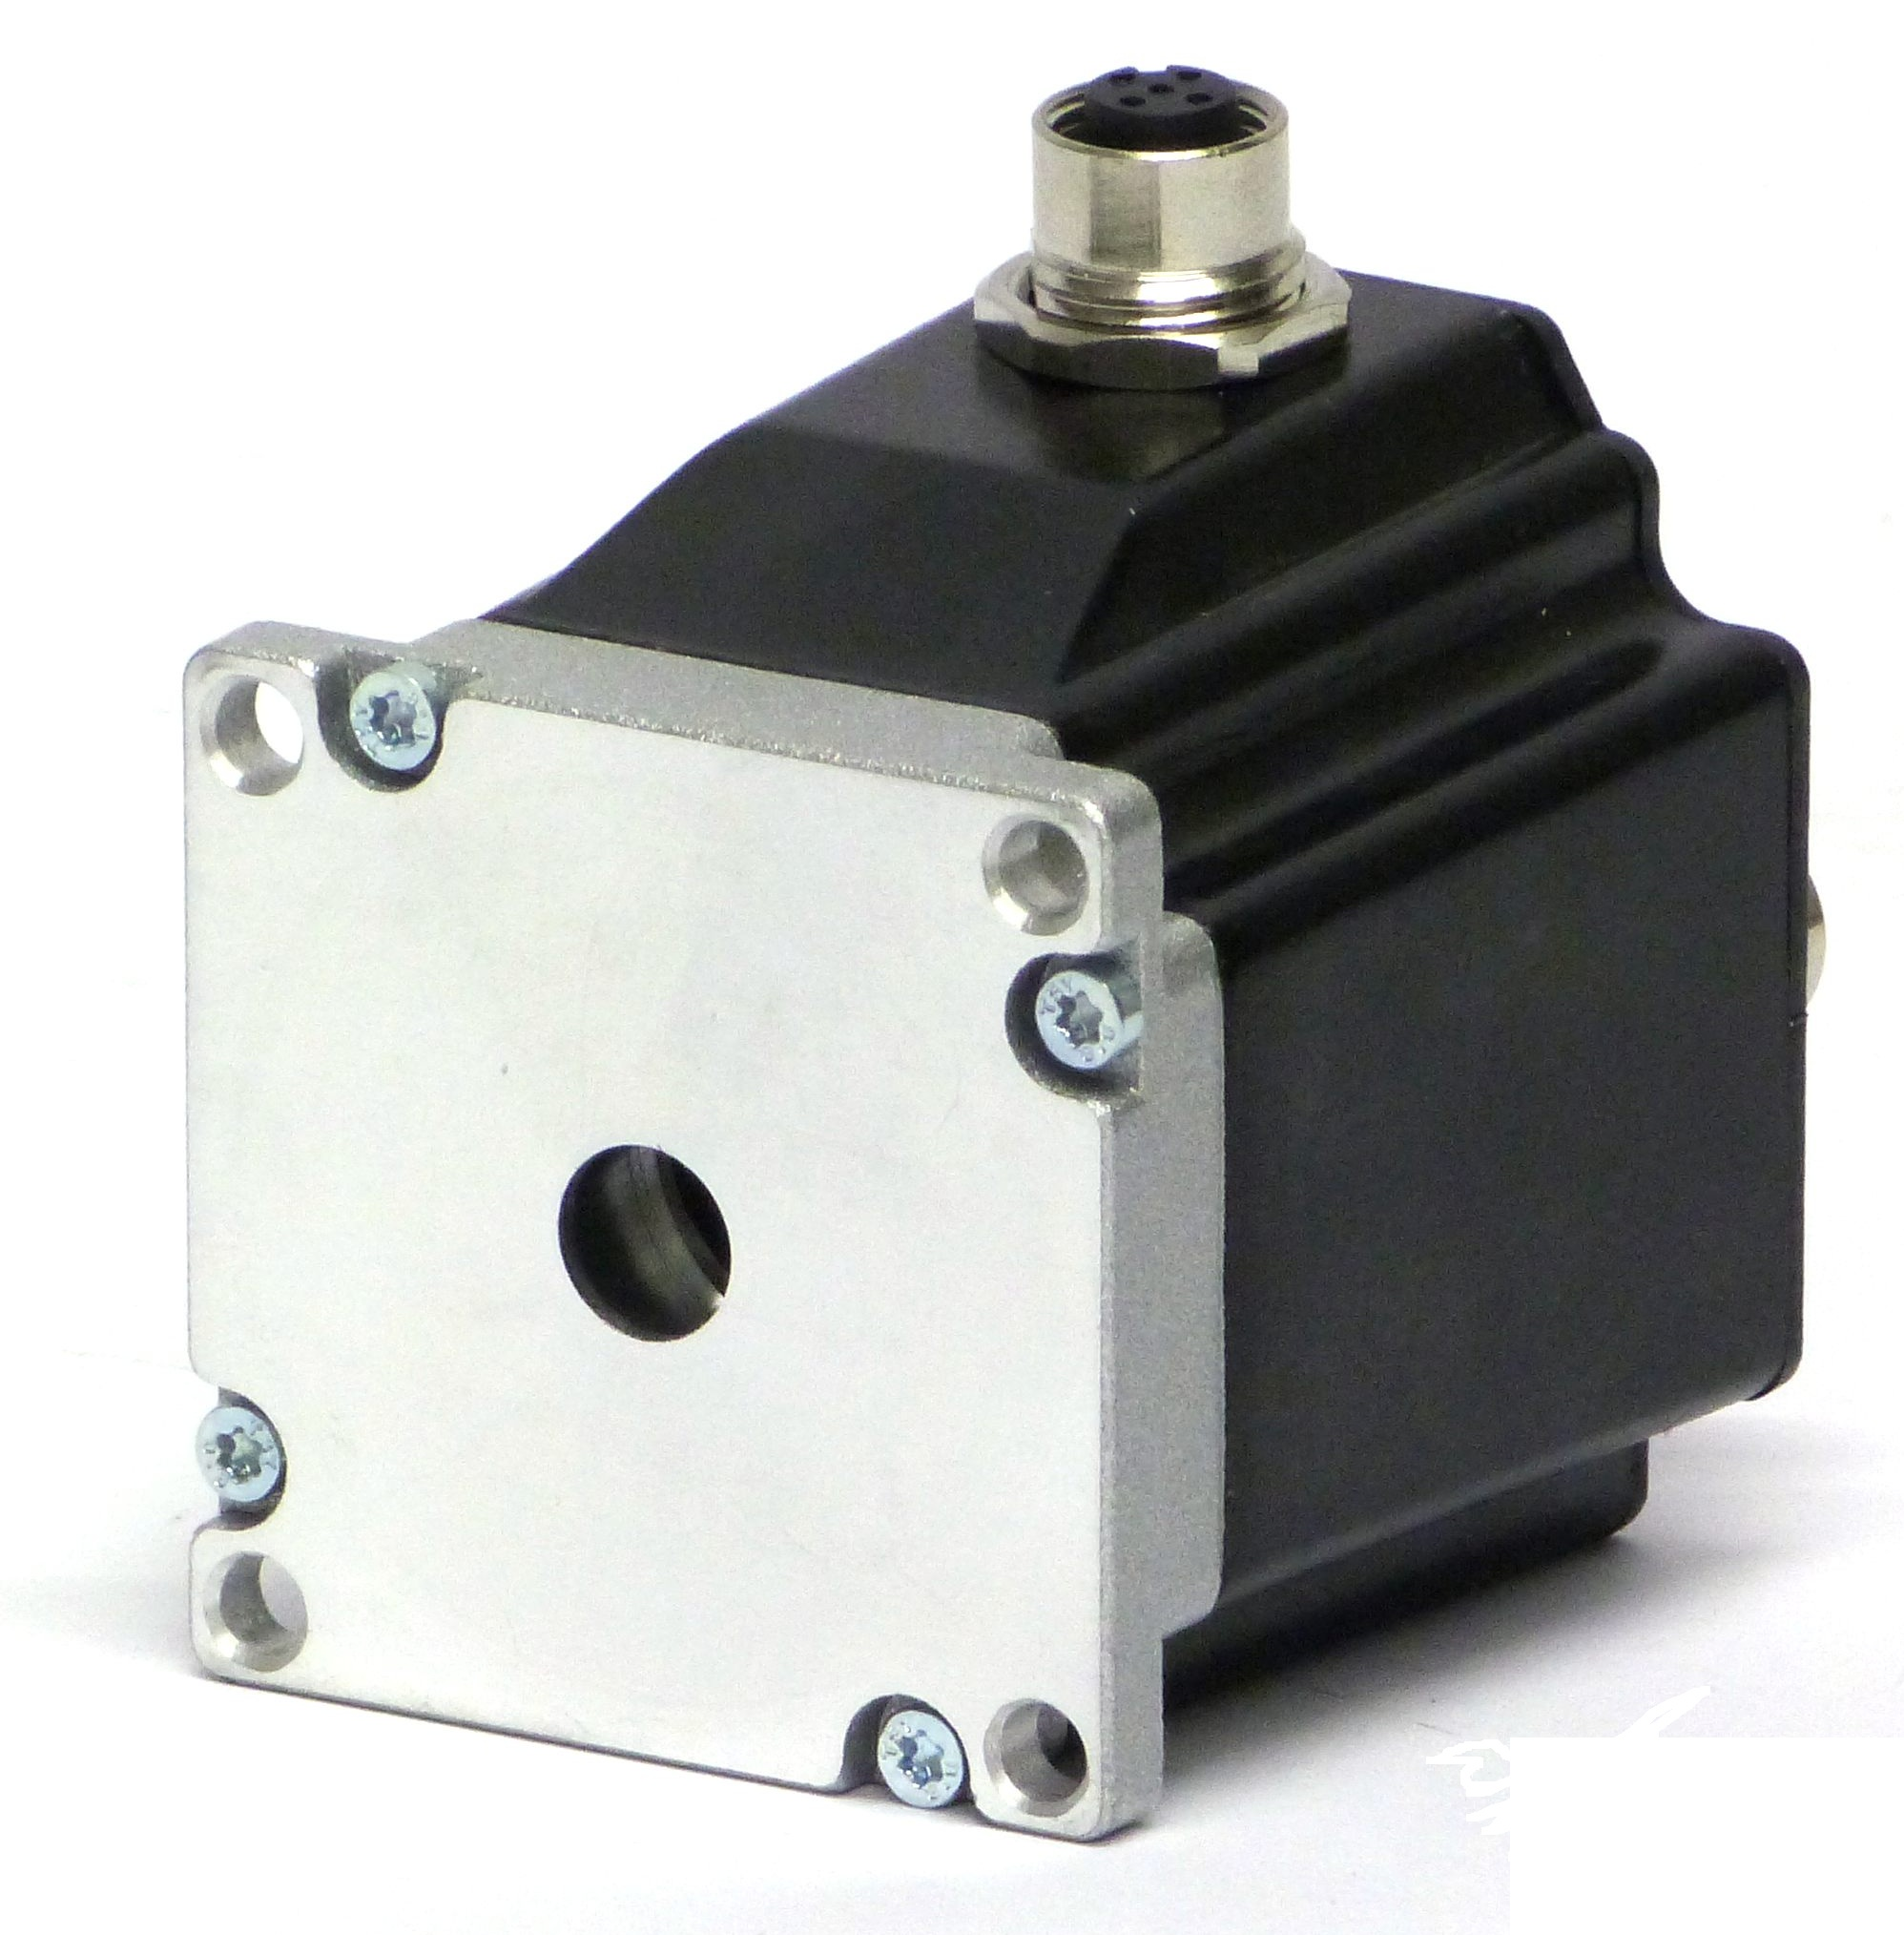 QuickStep Integrated Stepper Motor production from JVL